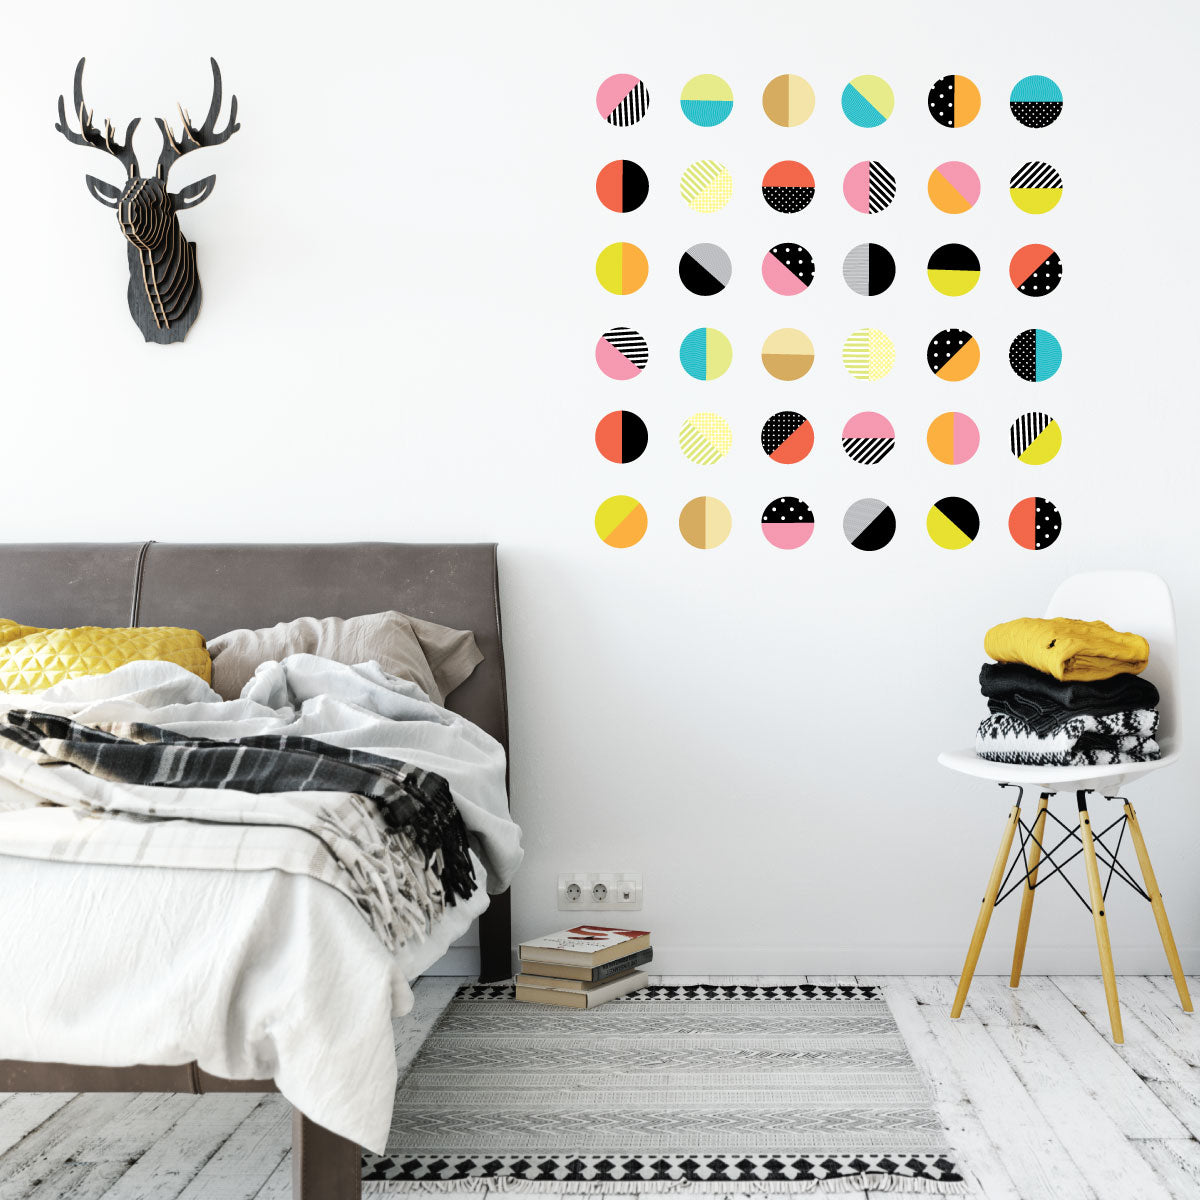 Color Pop Polka Dot Wall Decals 36 Patterned Wall Stickers Reusable Fabric Decals  sc 1 st  Wall Dressed Up & Color Pop Polka Dot Wall Decals 36 Patterned Wall Stickers Reusable